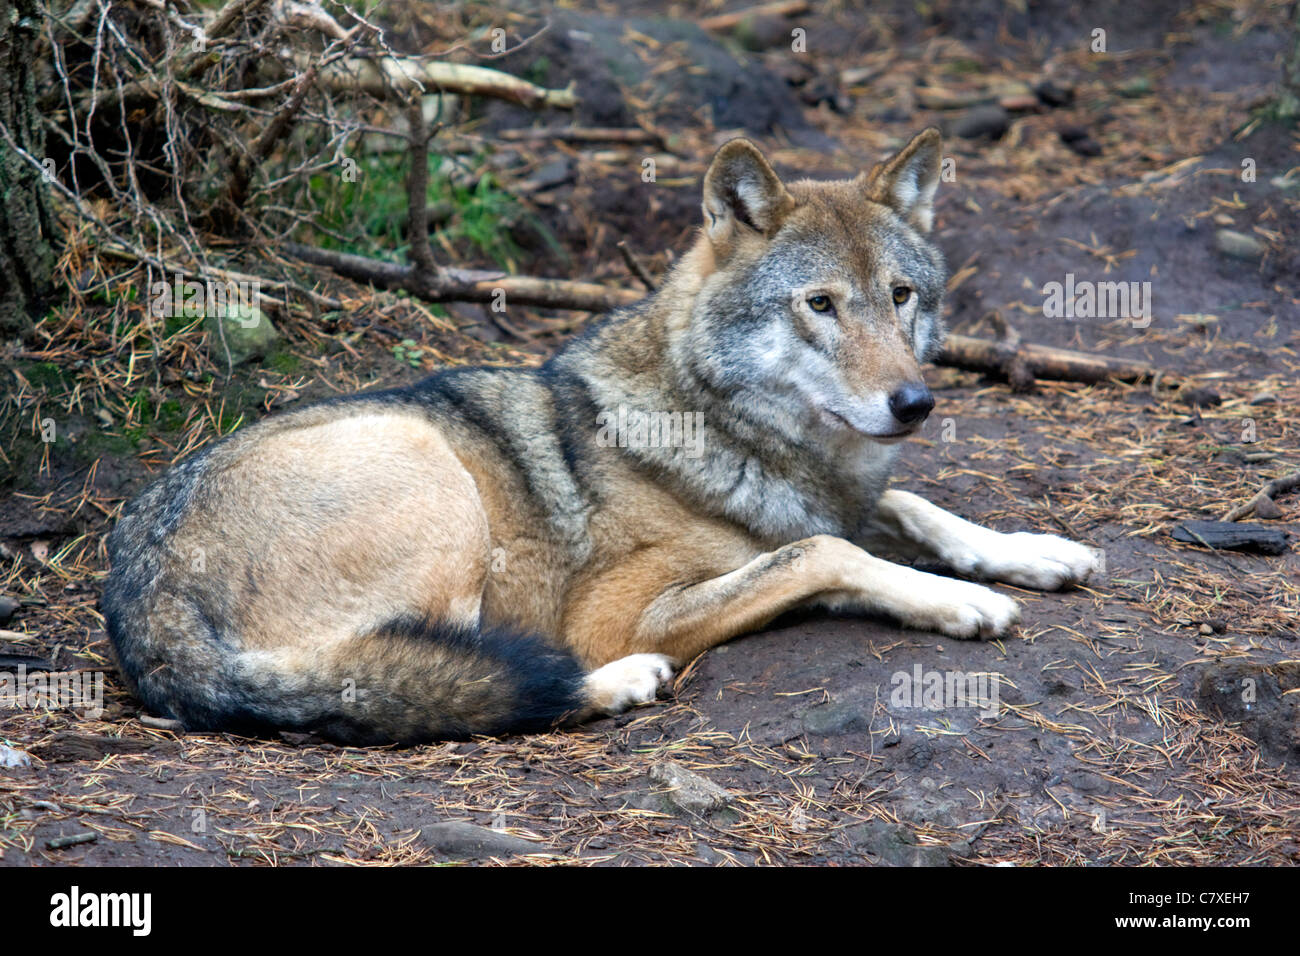 Wolf sitting down side view - photo#54